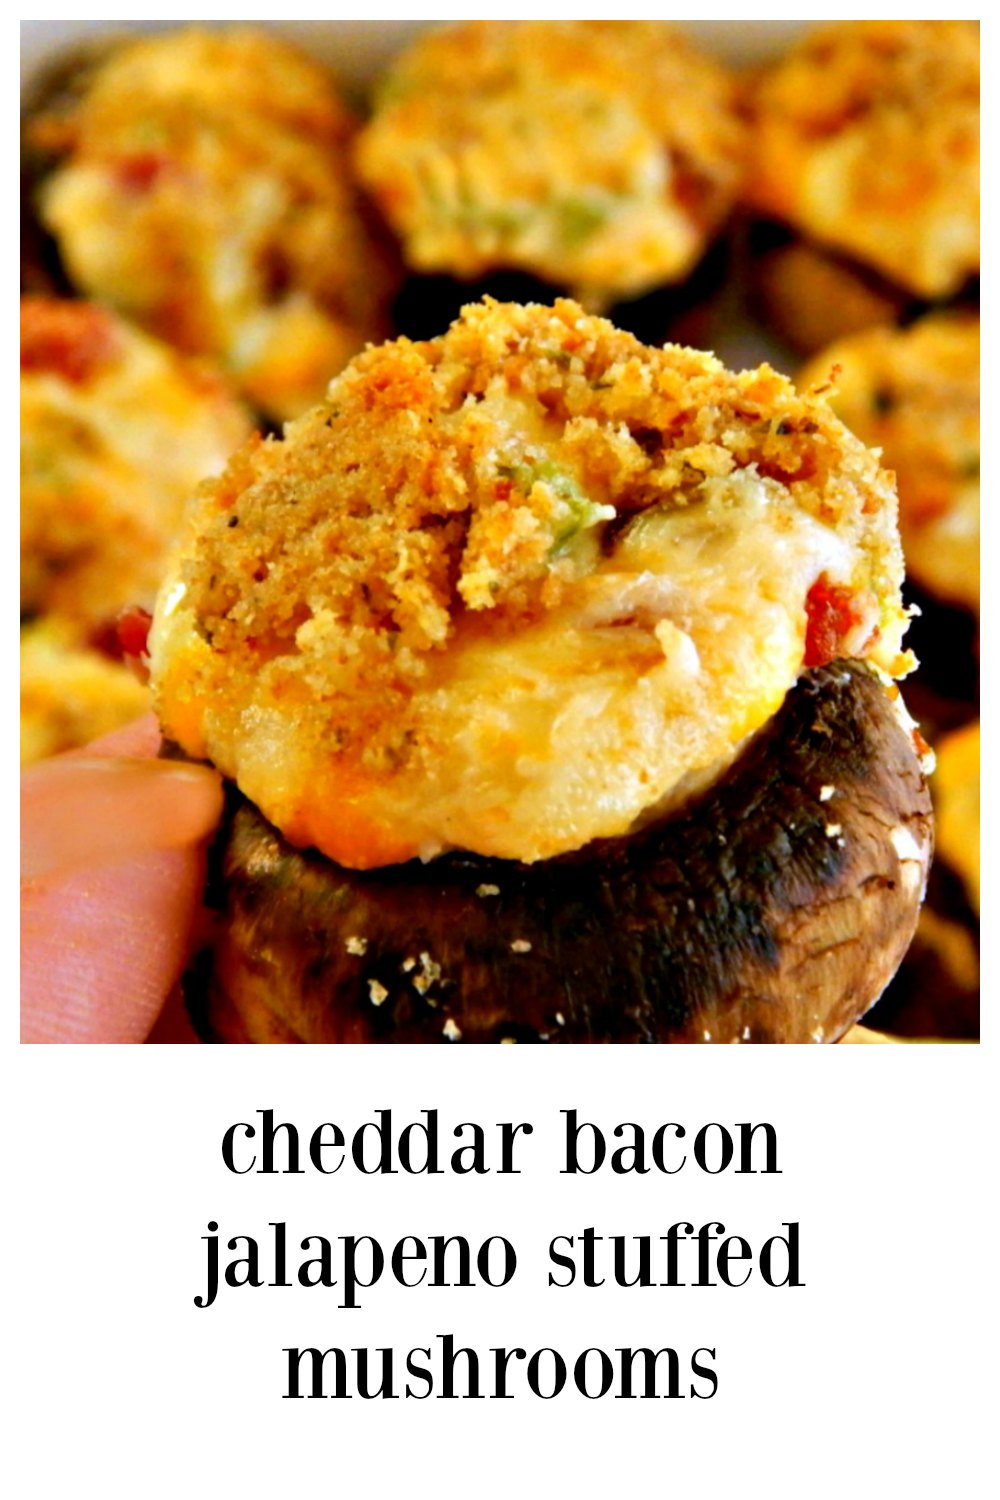 Cheddar Bacon Jalapeno Stuffed Mushrooms, inspired by Hy Vee, but def next level! So cheesy with just a hint of heat. Fabulous appetizer for a party, tailgate, barbecue or gameday! #StuffedMushrooms #Appetizers #CheddarBaconStuffedMushrooms #CheddarBaconJalapeno StuffedMushrooms